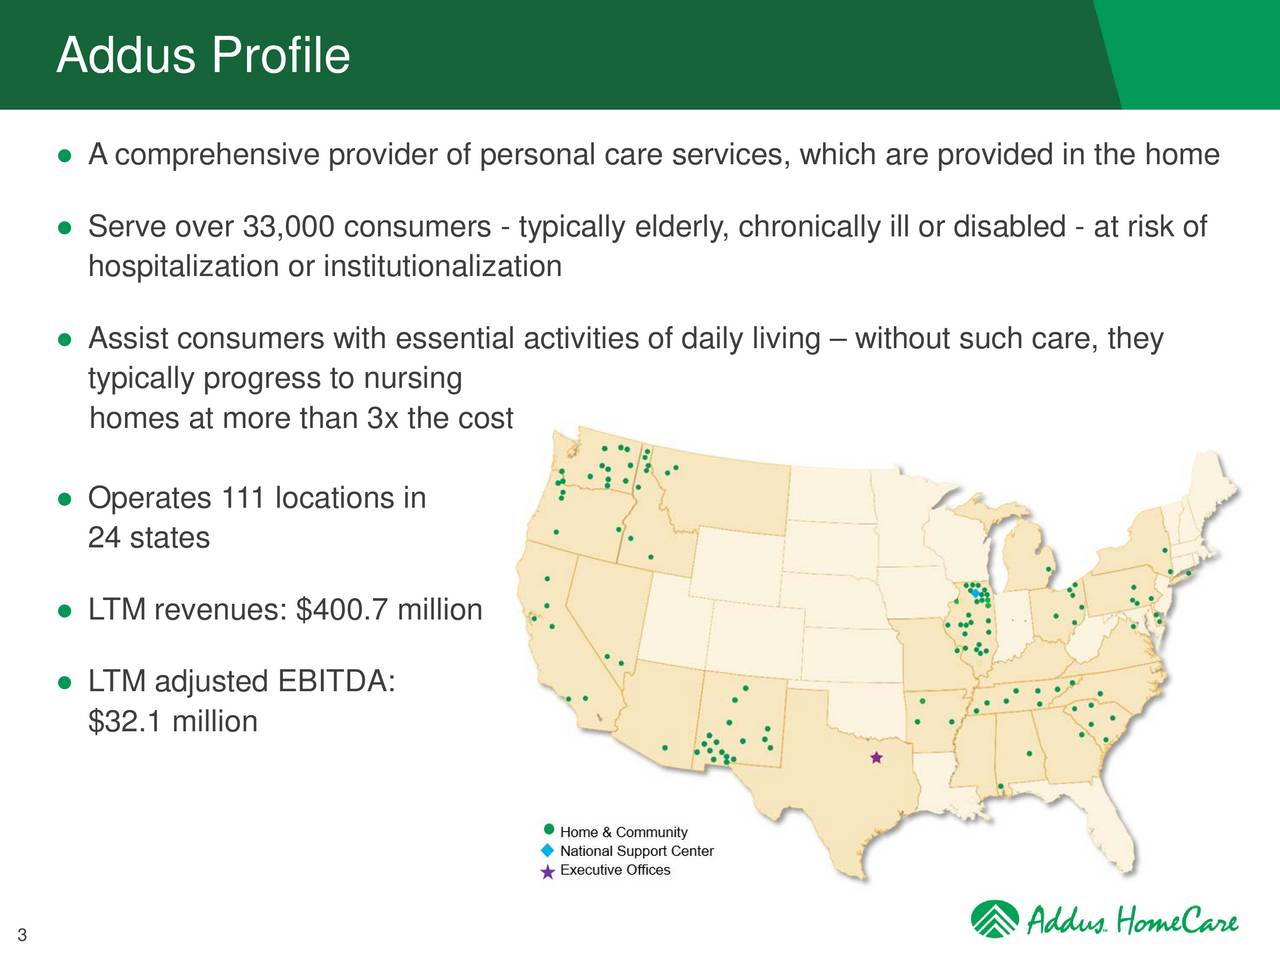 A comprehensive provider of personal care services, which are provided in the home Serve over 33,000 consumers - typically elderly, chronically ill or disabled - at risk of hospitalization or institutionalization Assist consumers with essential activities of daily living  without such care, they typically progress to nursing homes at more than 3x the cost Operates 111 locations in 24 states LTM revenues: $400.7 million LTM adjusted EBITDA: $32.1 million 3